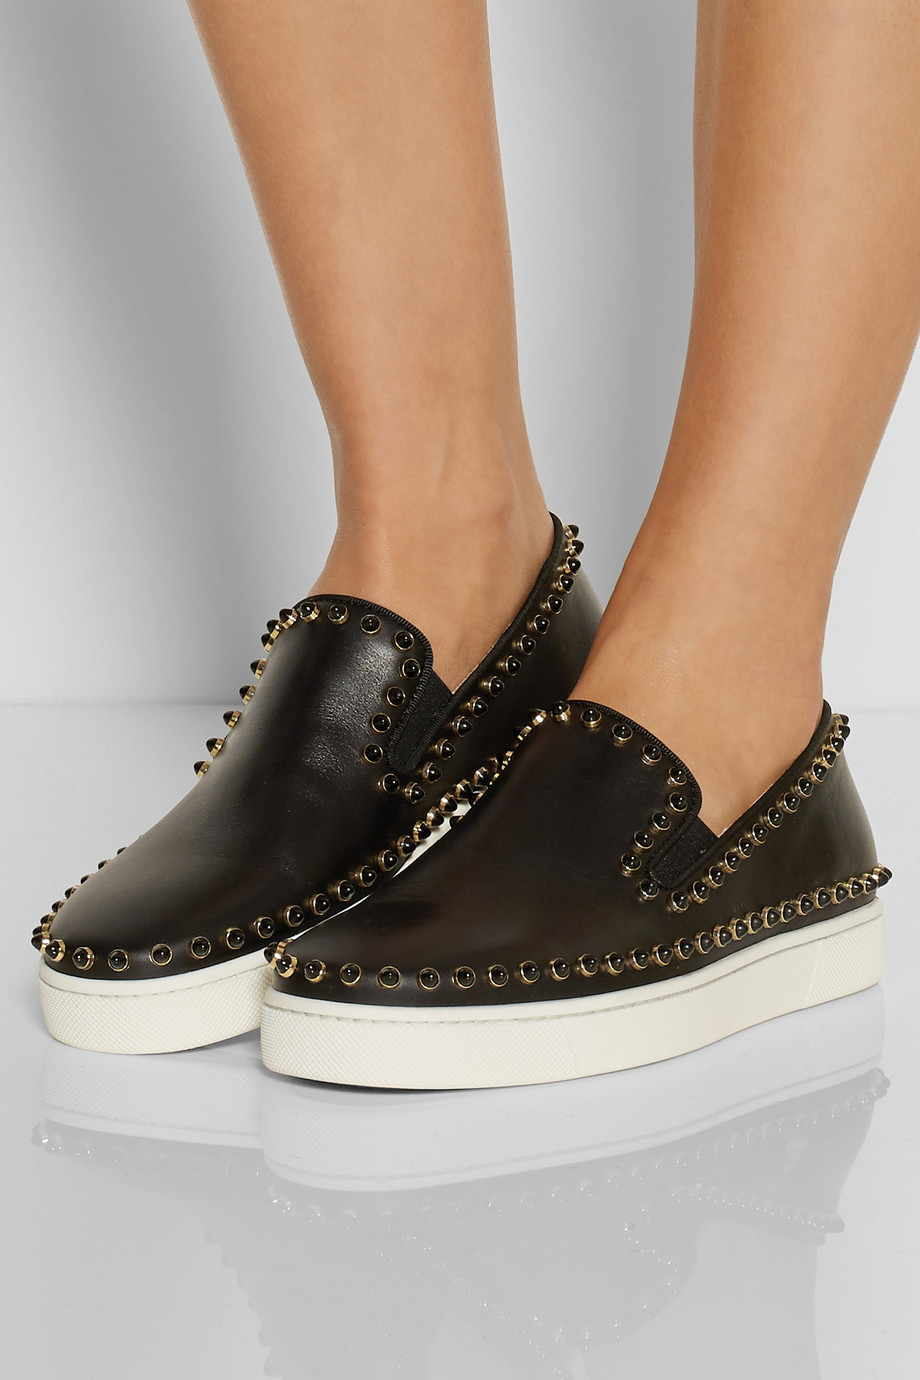 d9819419f08 Christian Louboutin Black Cador Studded Leather Slip-On Sneakers